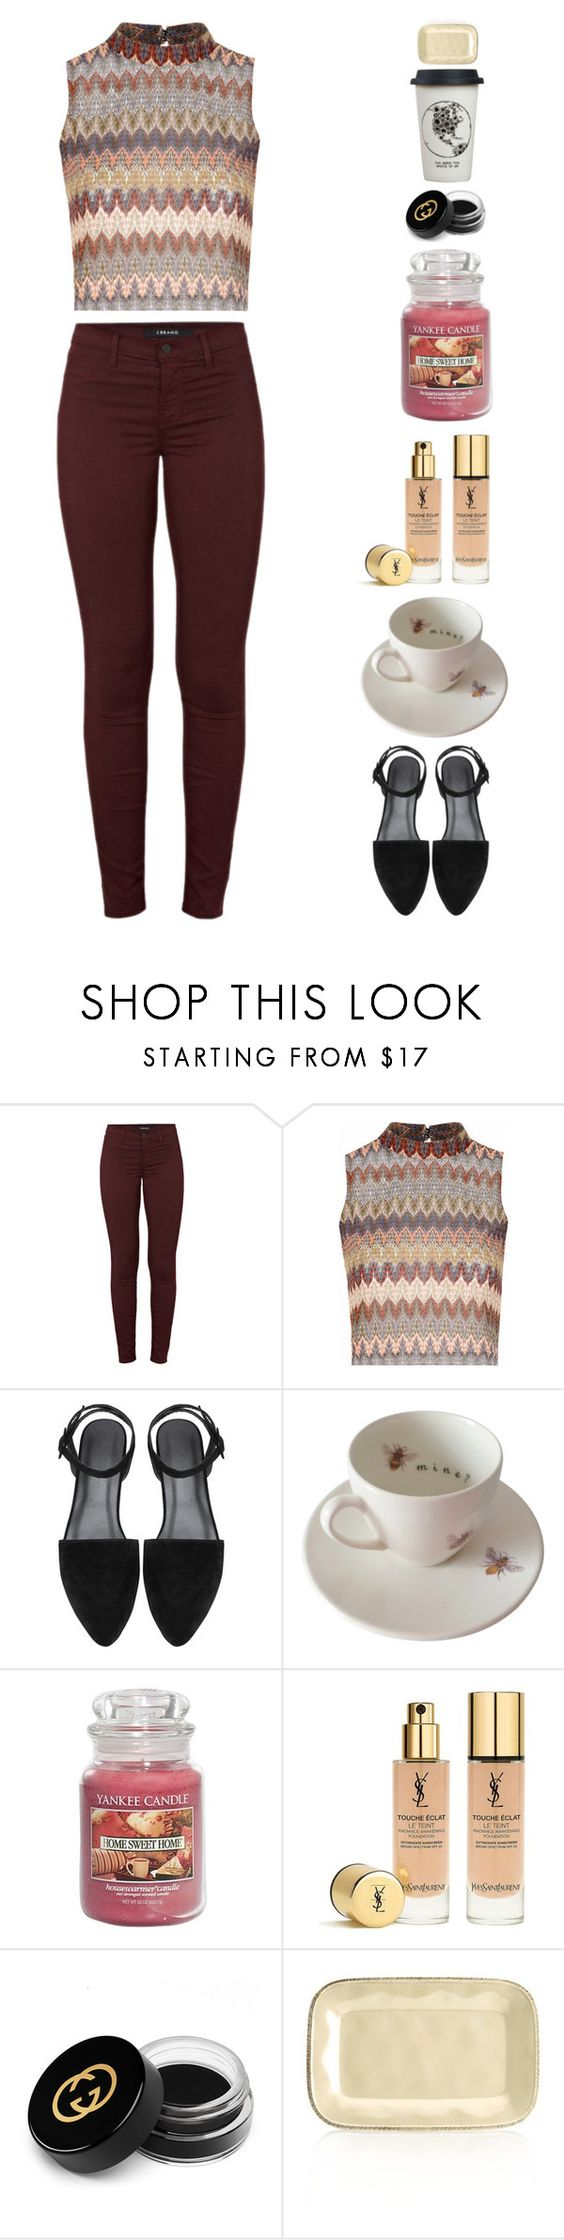 """""""Hands on it"""" by sasha06527 ❤ liked on Polyvore featuring J Brand, Glamorous, Outlandish Creations, Yankee Candle, Yves Saint Laurent, Gucci, Rachael Ray, Natural Life, women's clothing and women's fashion"""